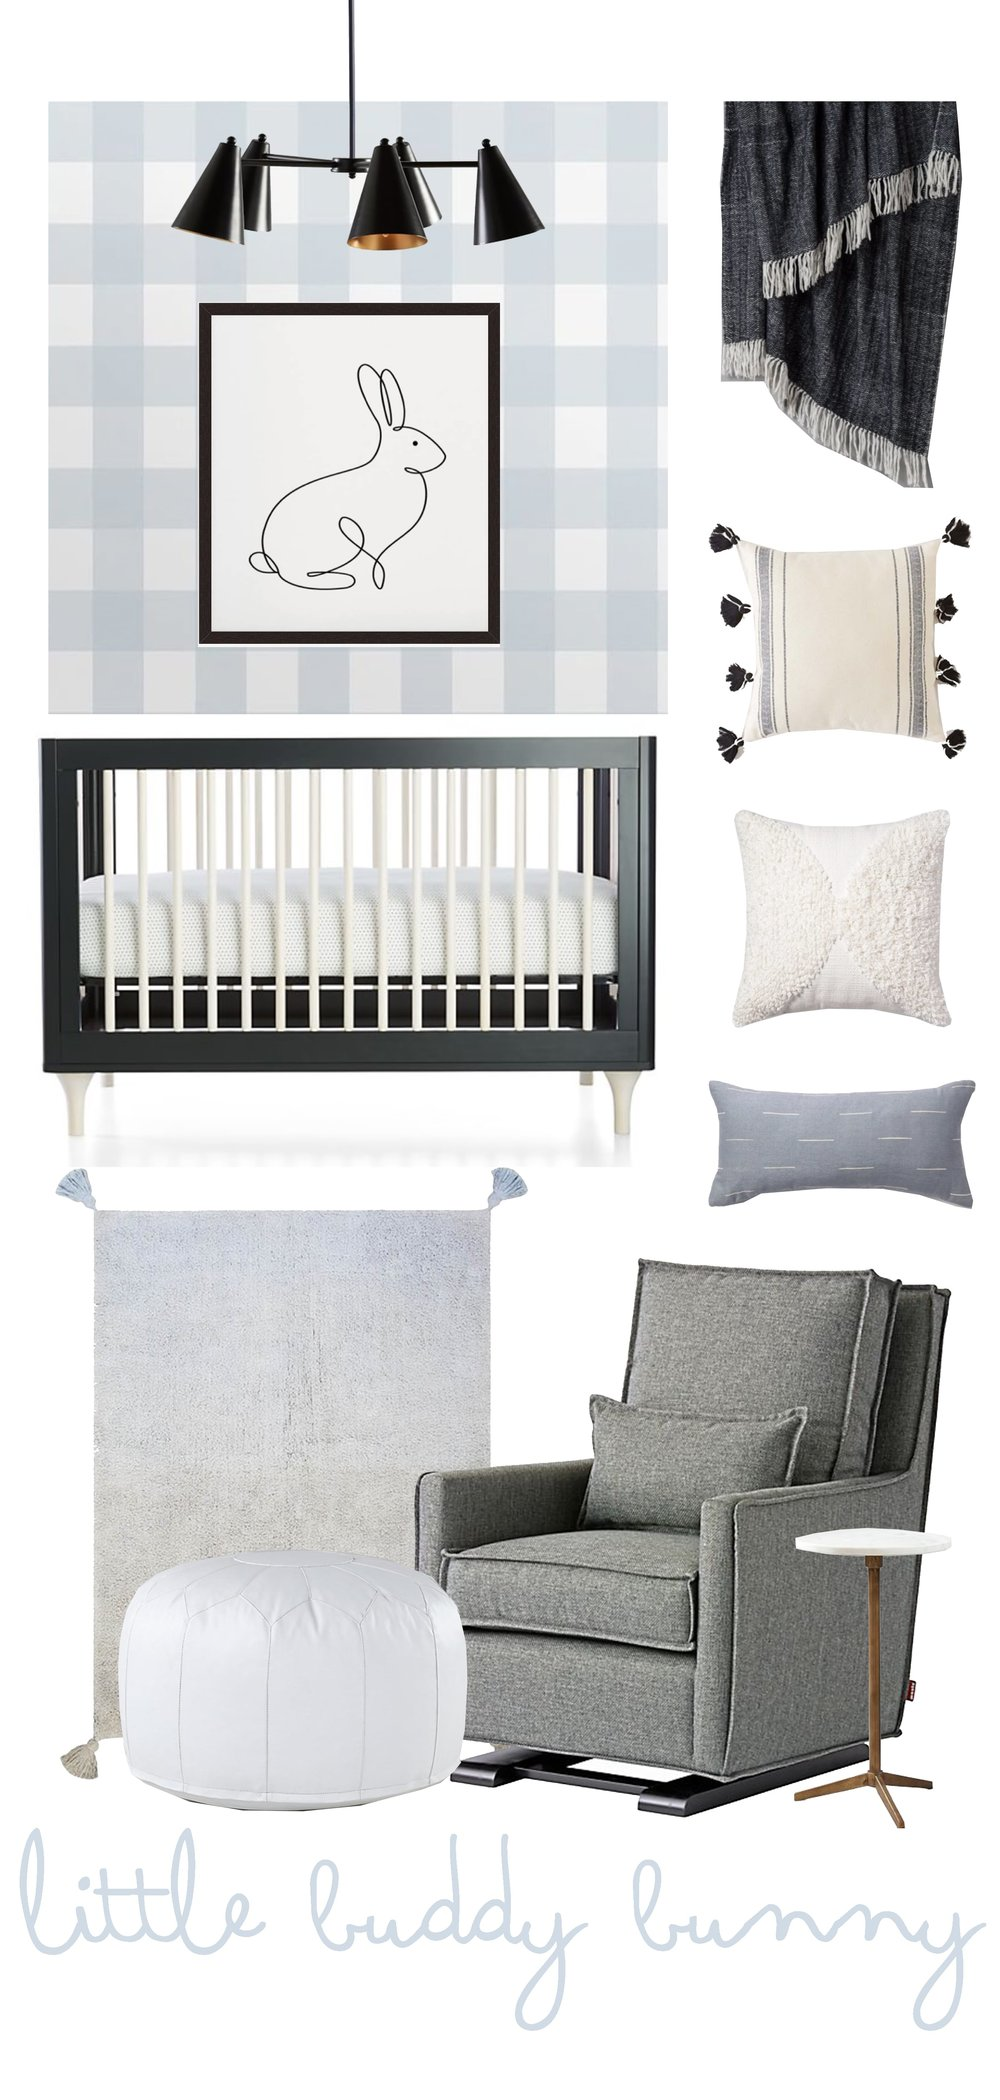 Bunny Inspired Nursery for Boys